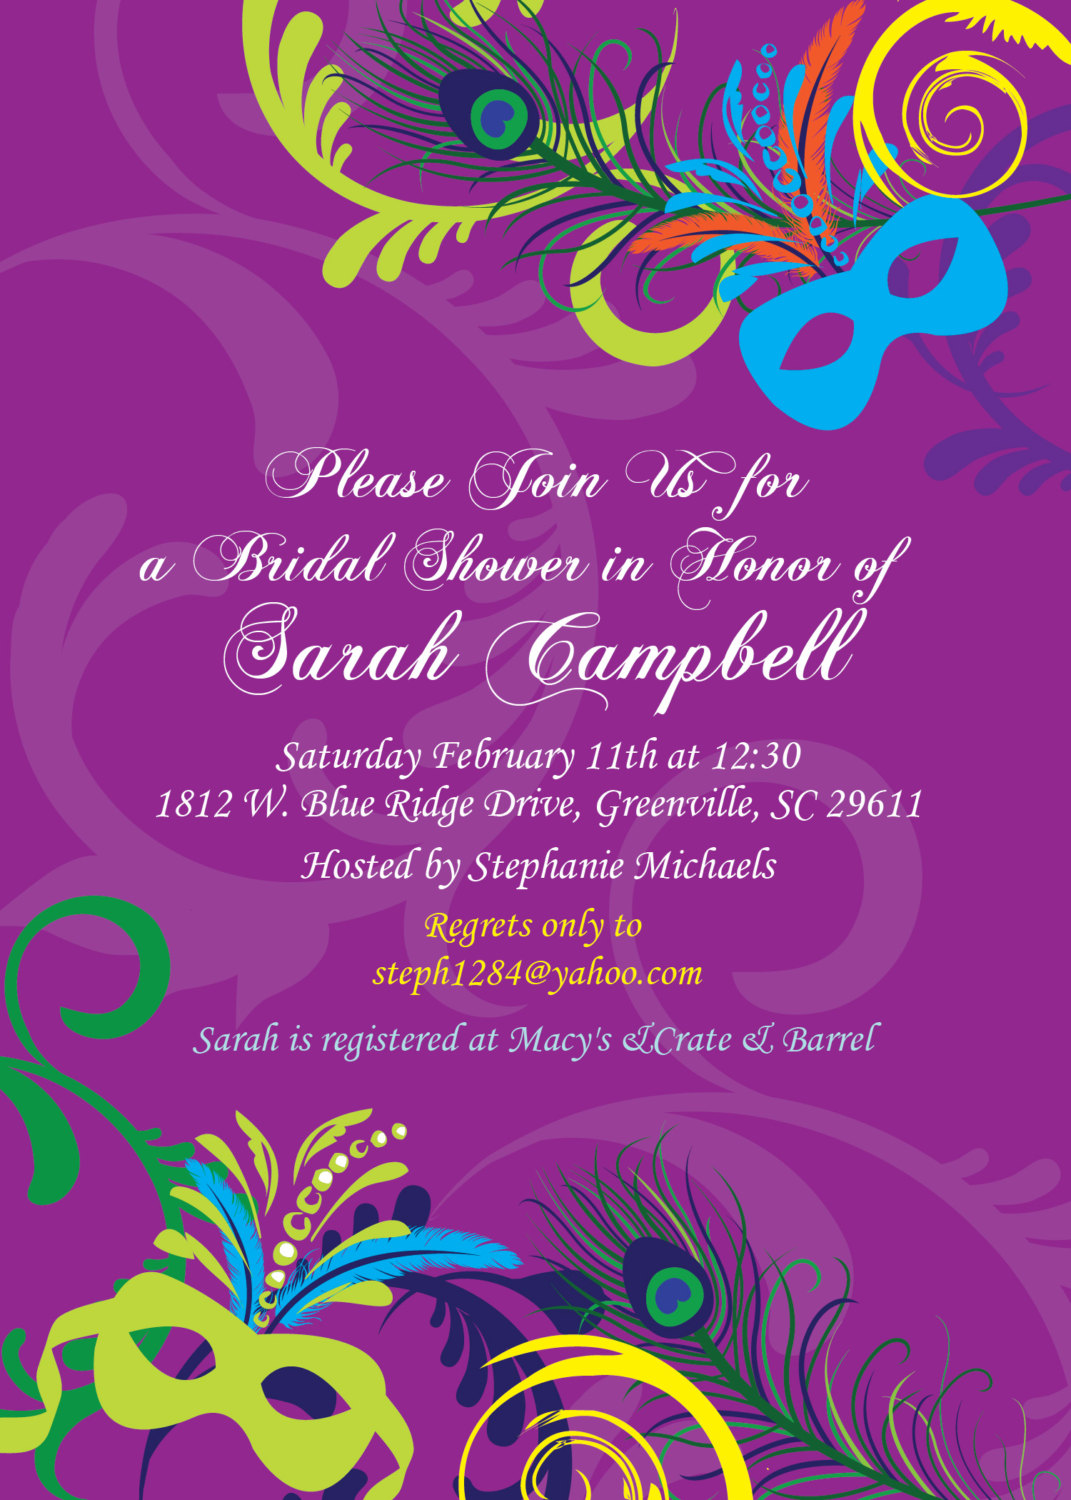 c22d0ccd8104 Bridal Shower Invitations